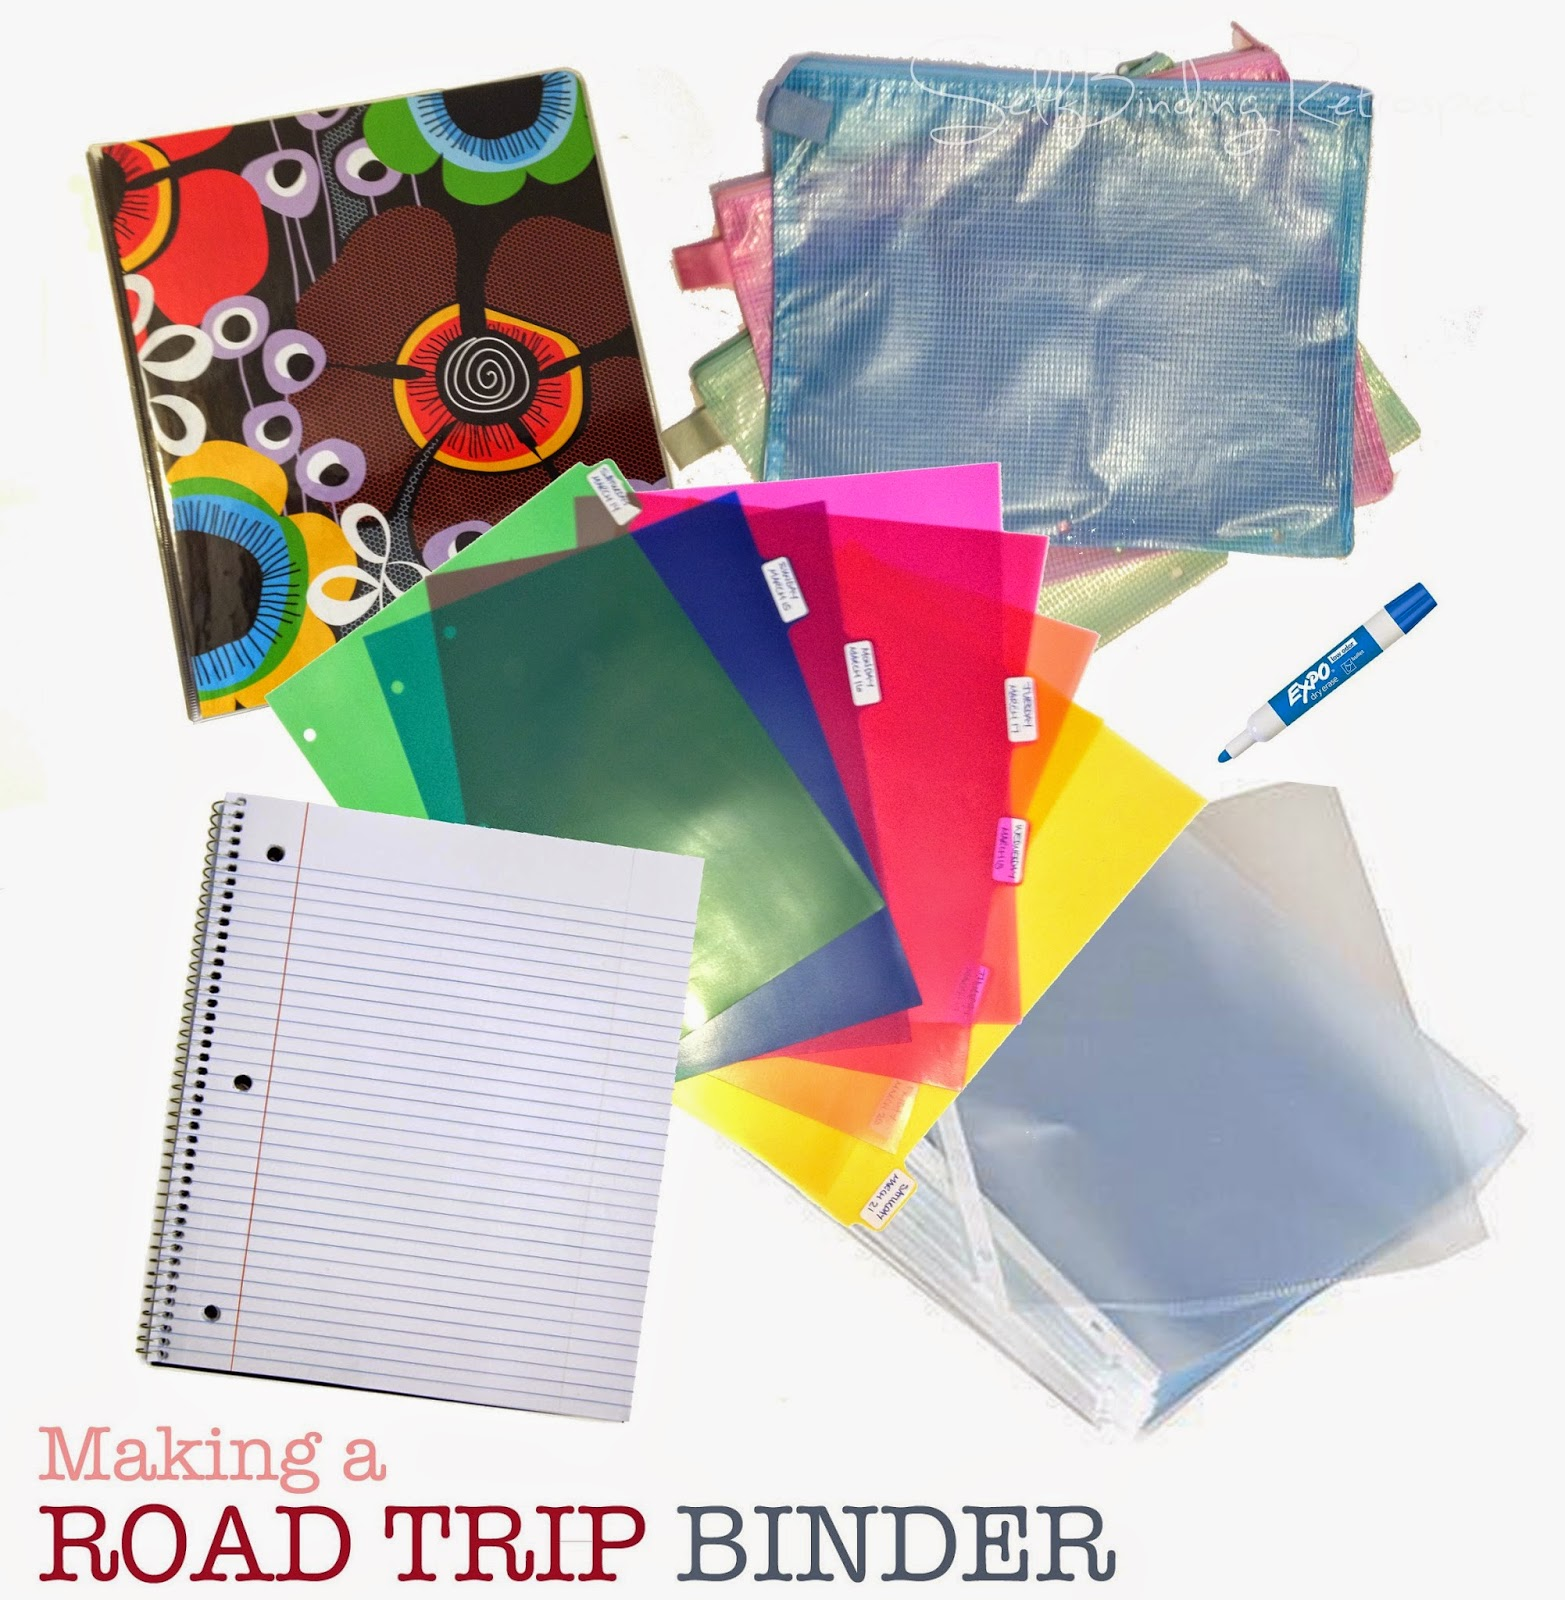 Making a road trip binder